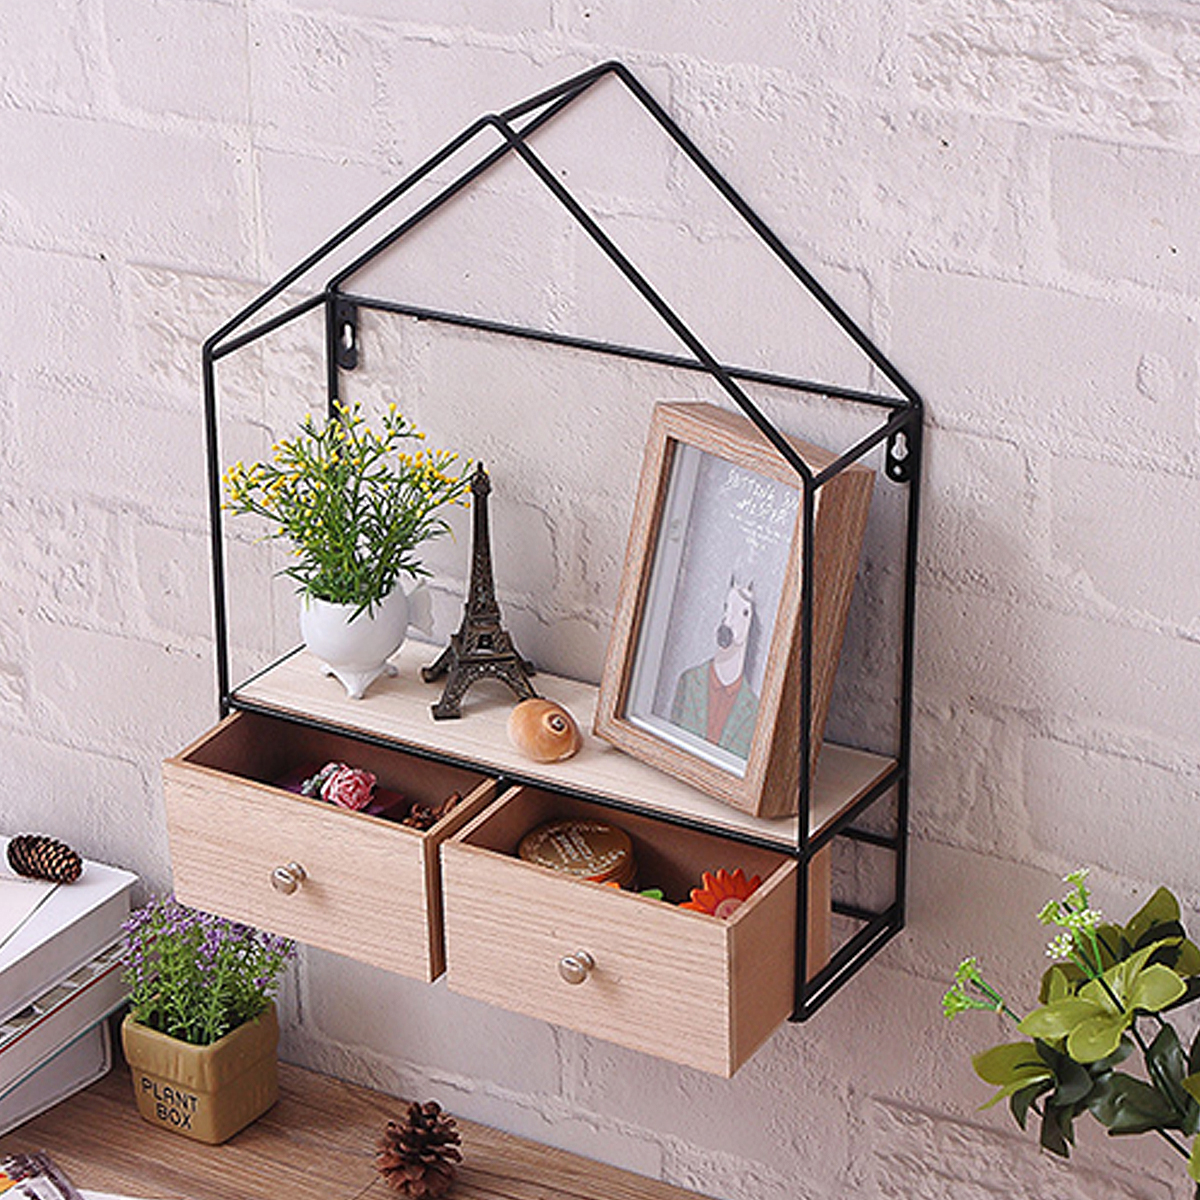 Retro Triangle House Double Drawer Wood Iron Craft Wall Shelf Rack Storage Industrial Decorations